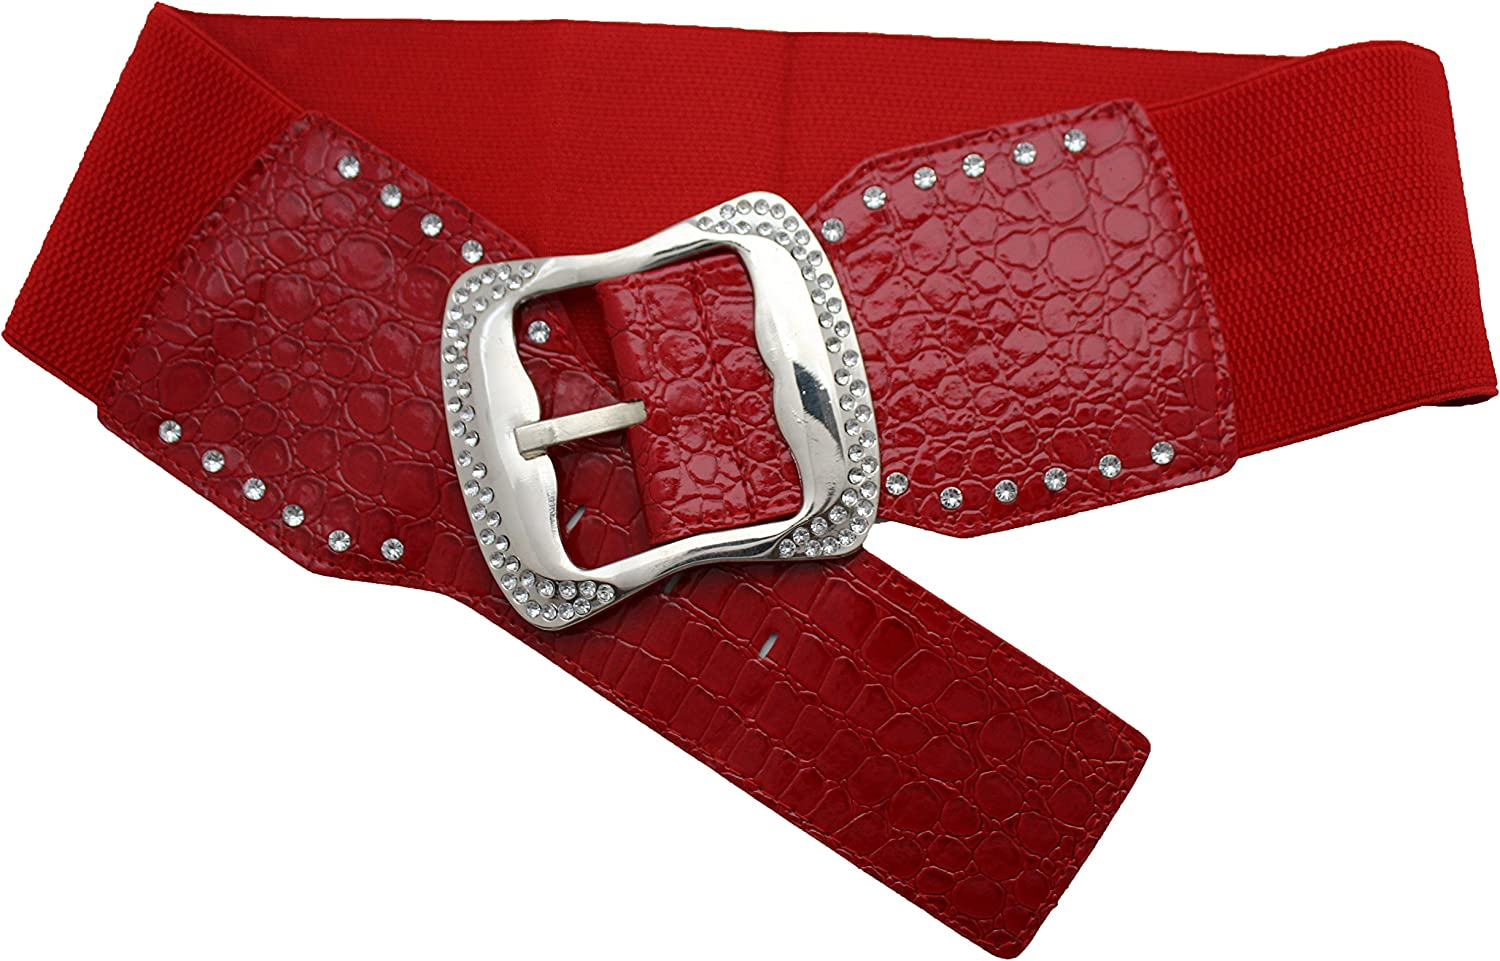 TFJ Women Fashion Wide Elastic Belt Hip Waist Silver Metal Bling Buckle M L Red